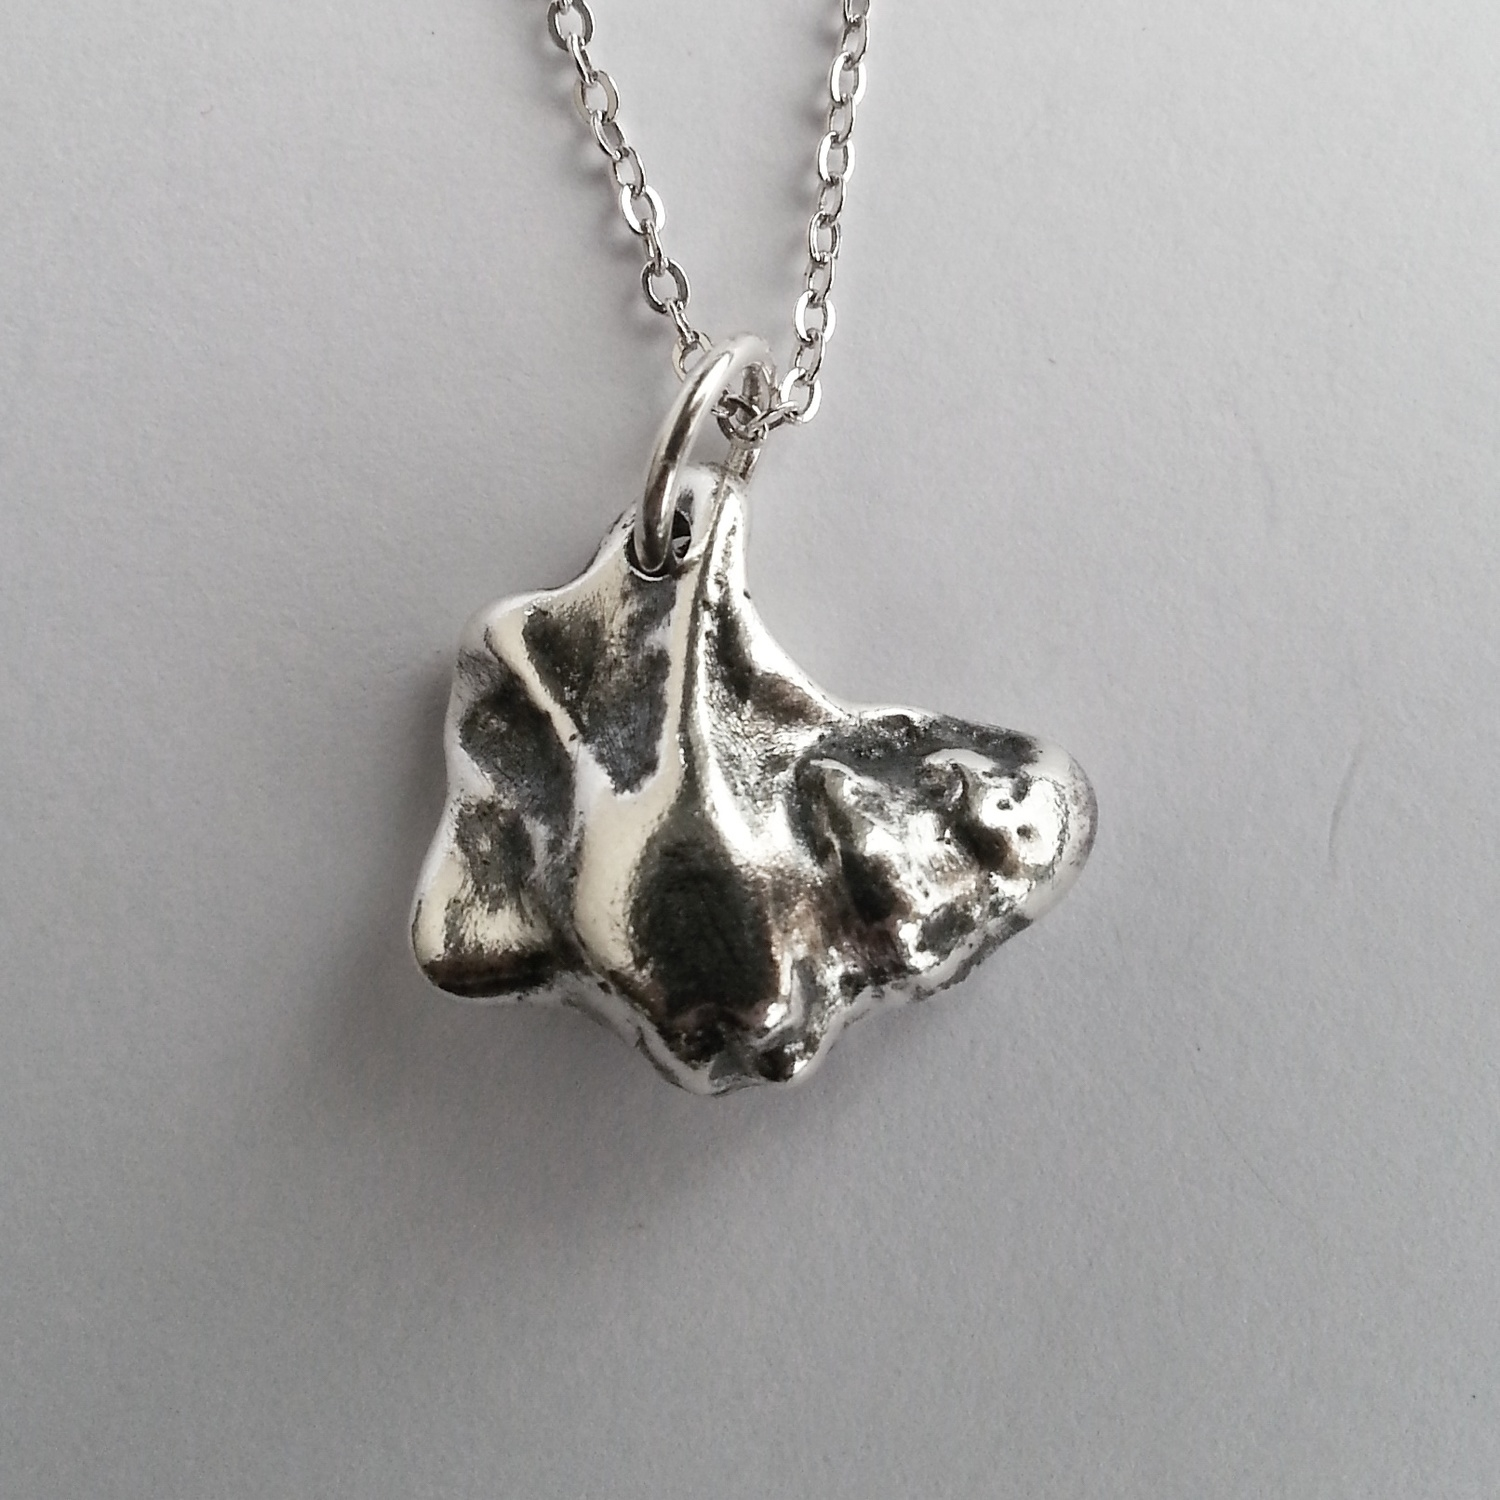 Unique Organic Oddity, Solid Sterling Silver Seashell Necklace, Handcrafted Original Pendant